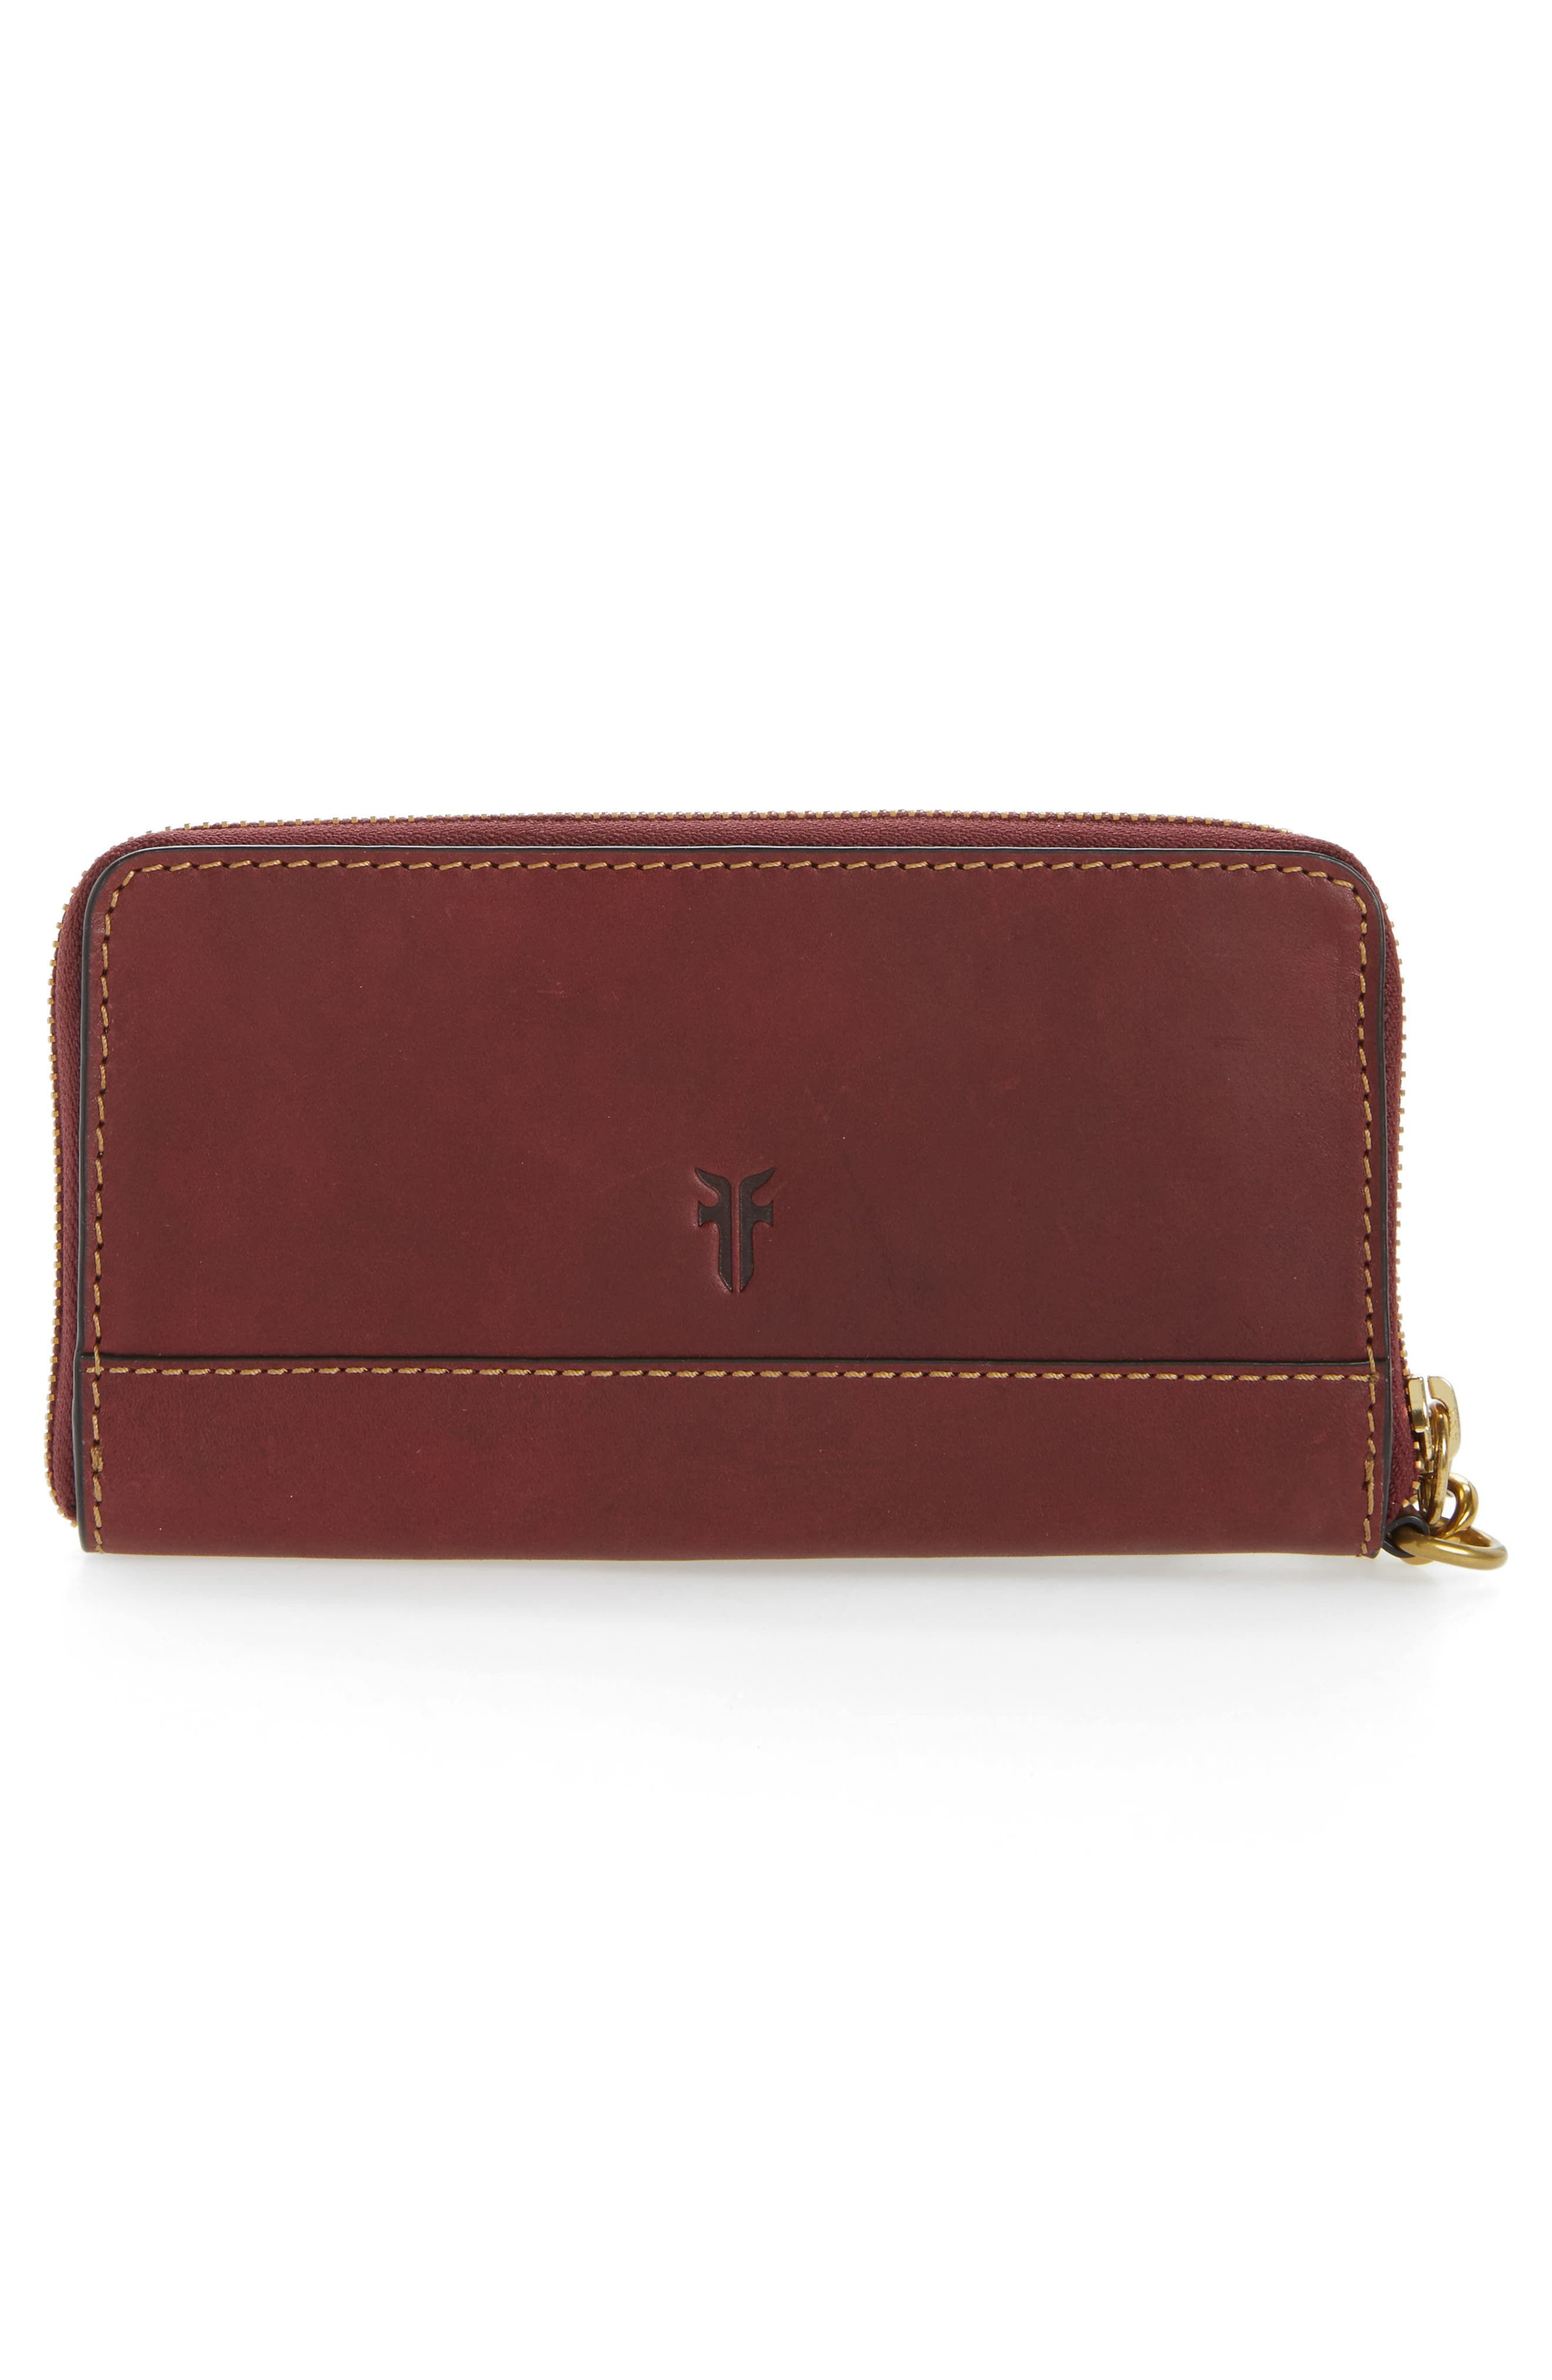 Ilana Harness Phone Leather Zip Wallet,                             Alternate thumbnail 6, color,